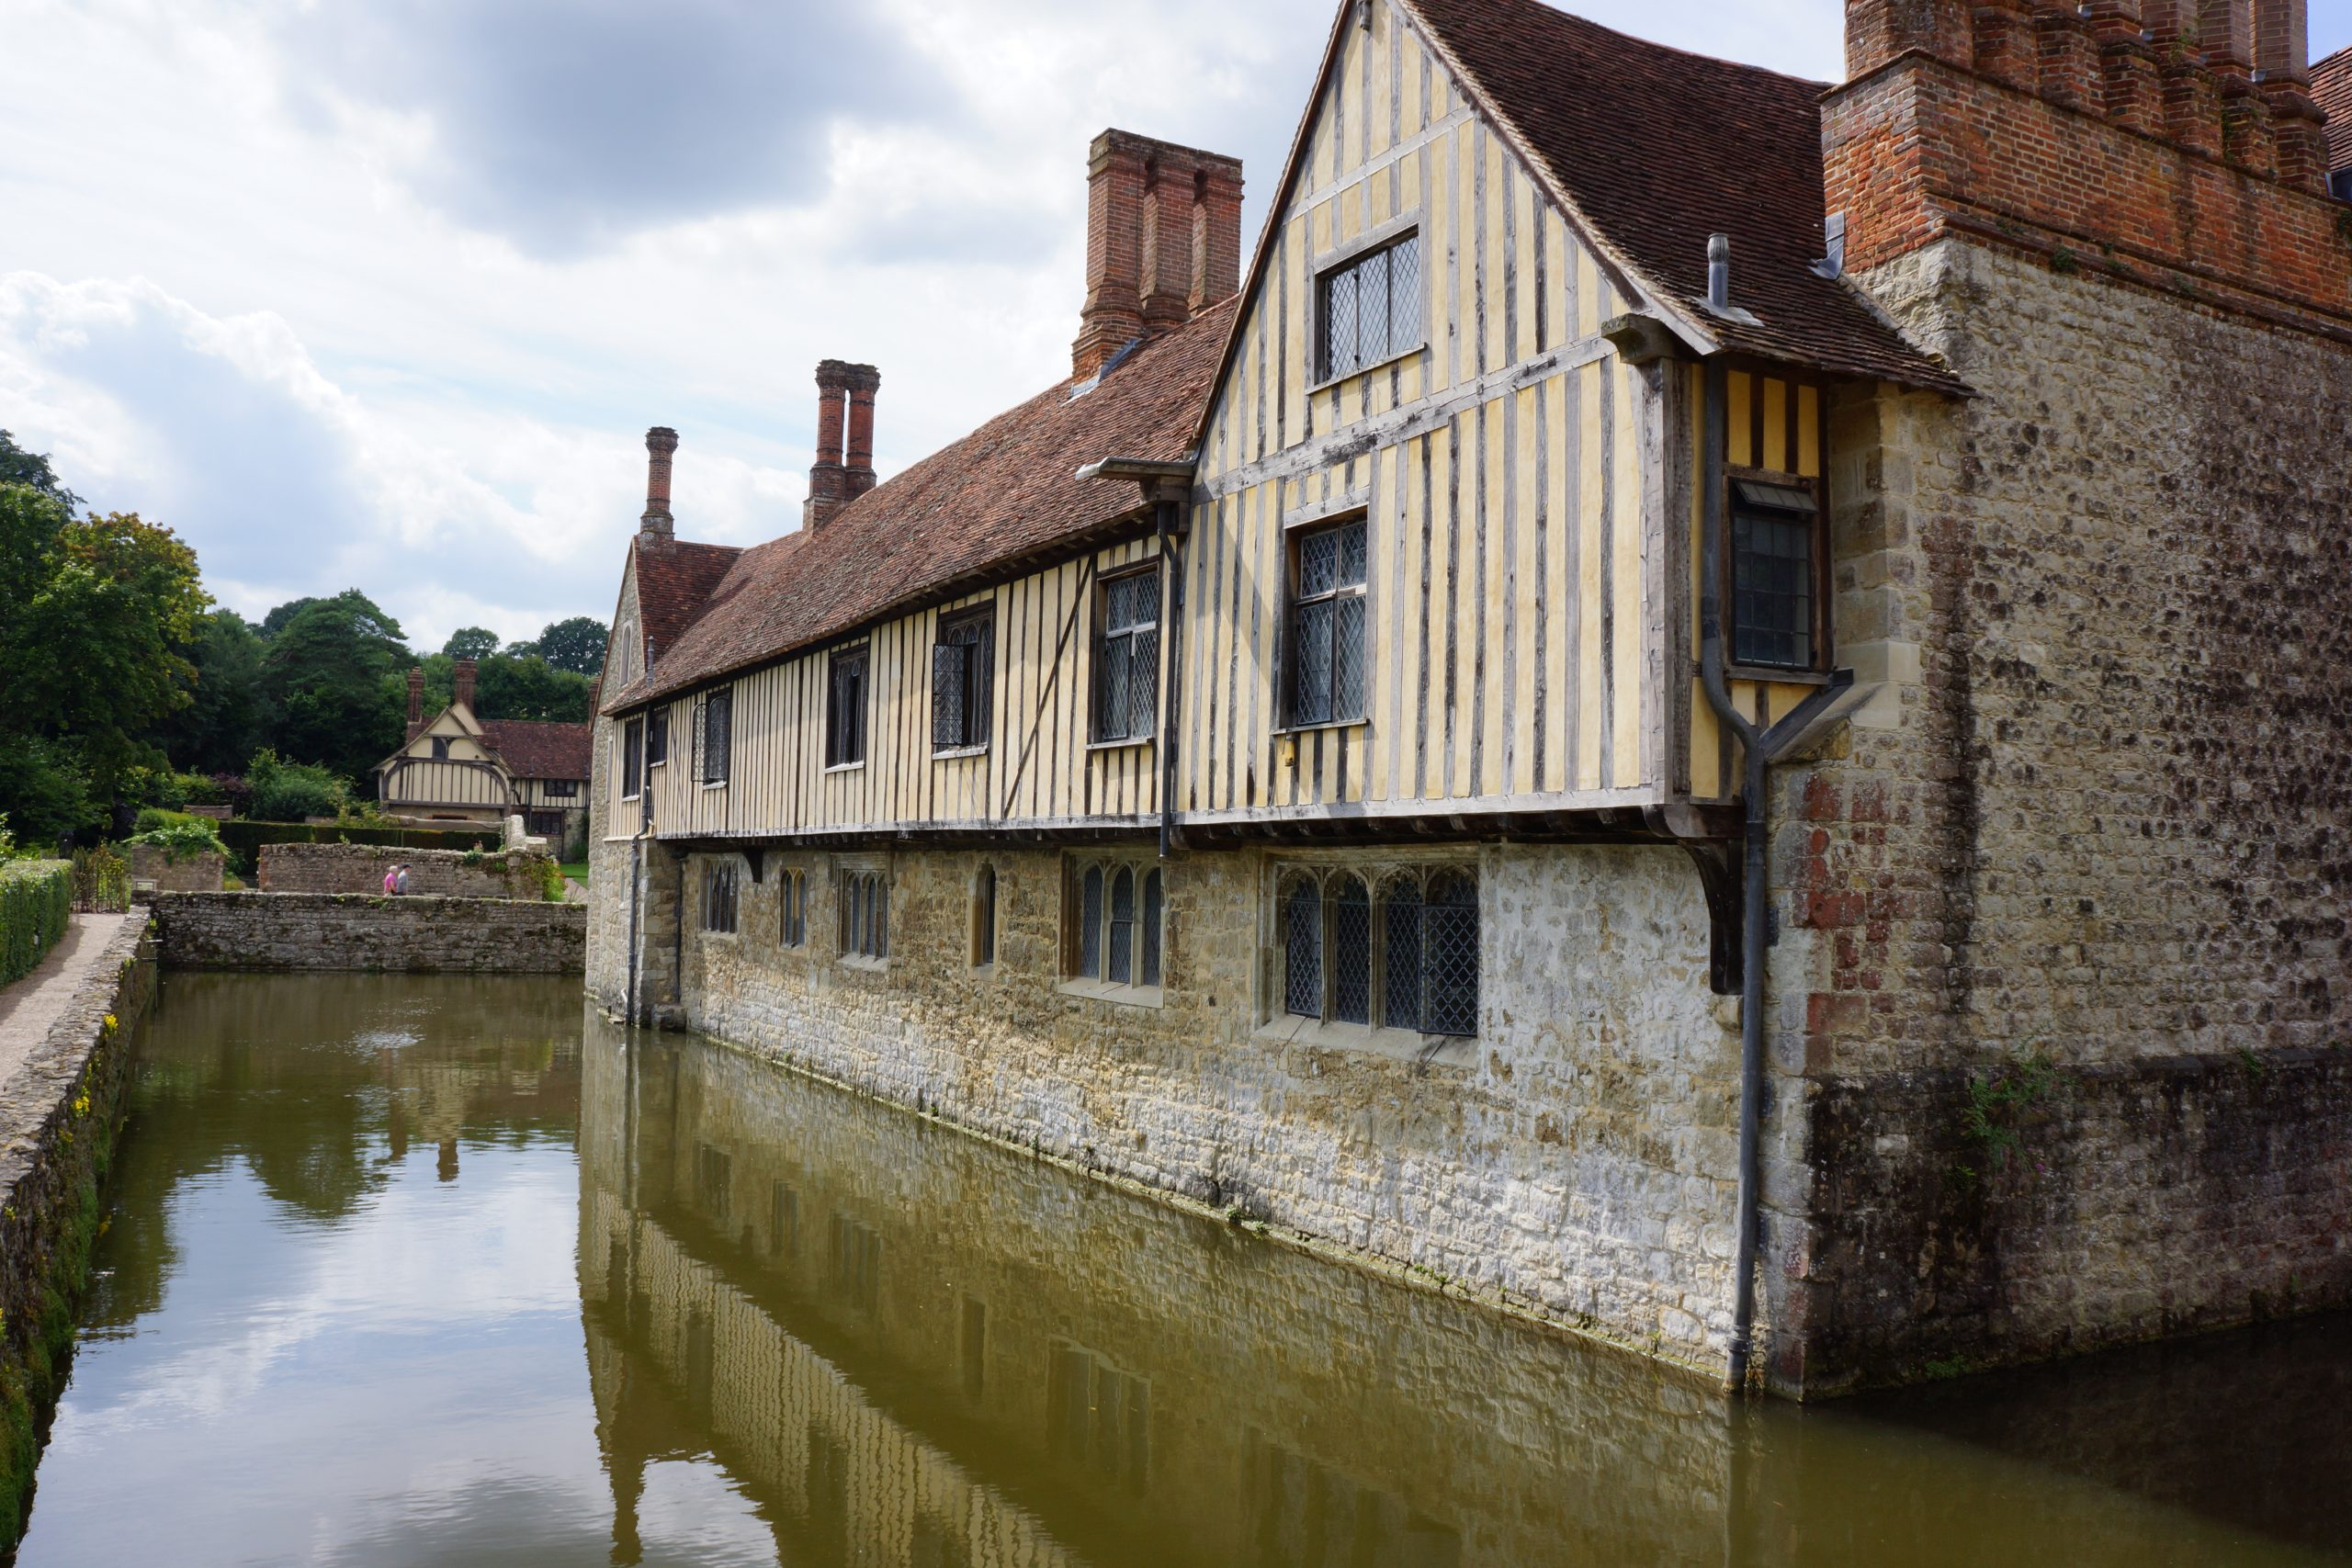 Through the Lens: A Proper Moat – A Visit to Ightham Mote